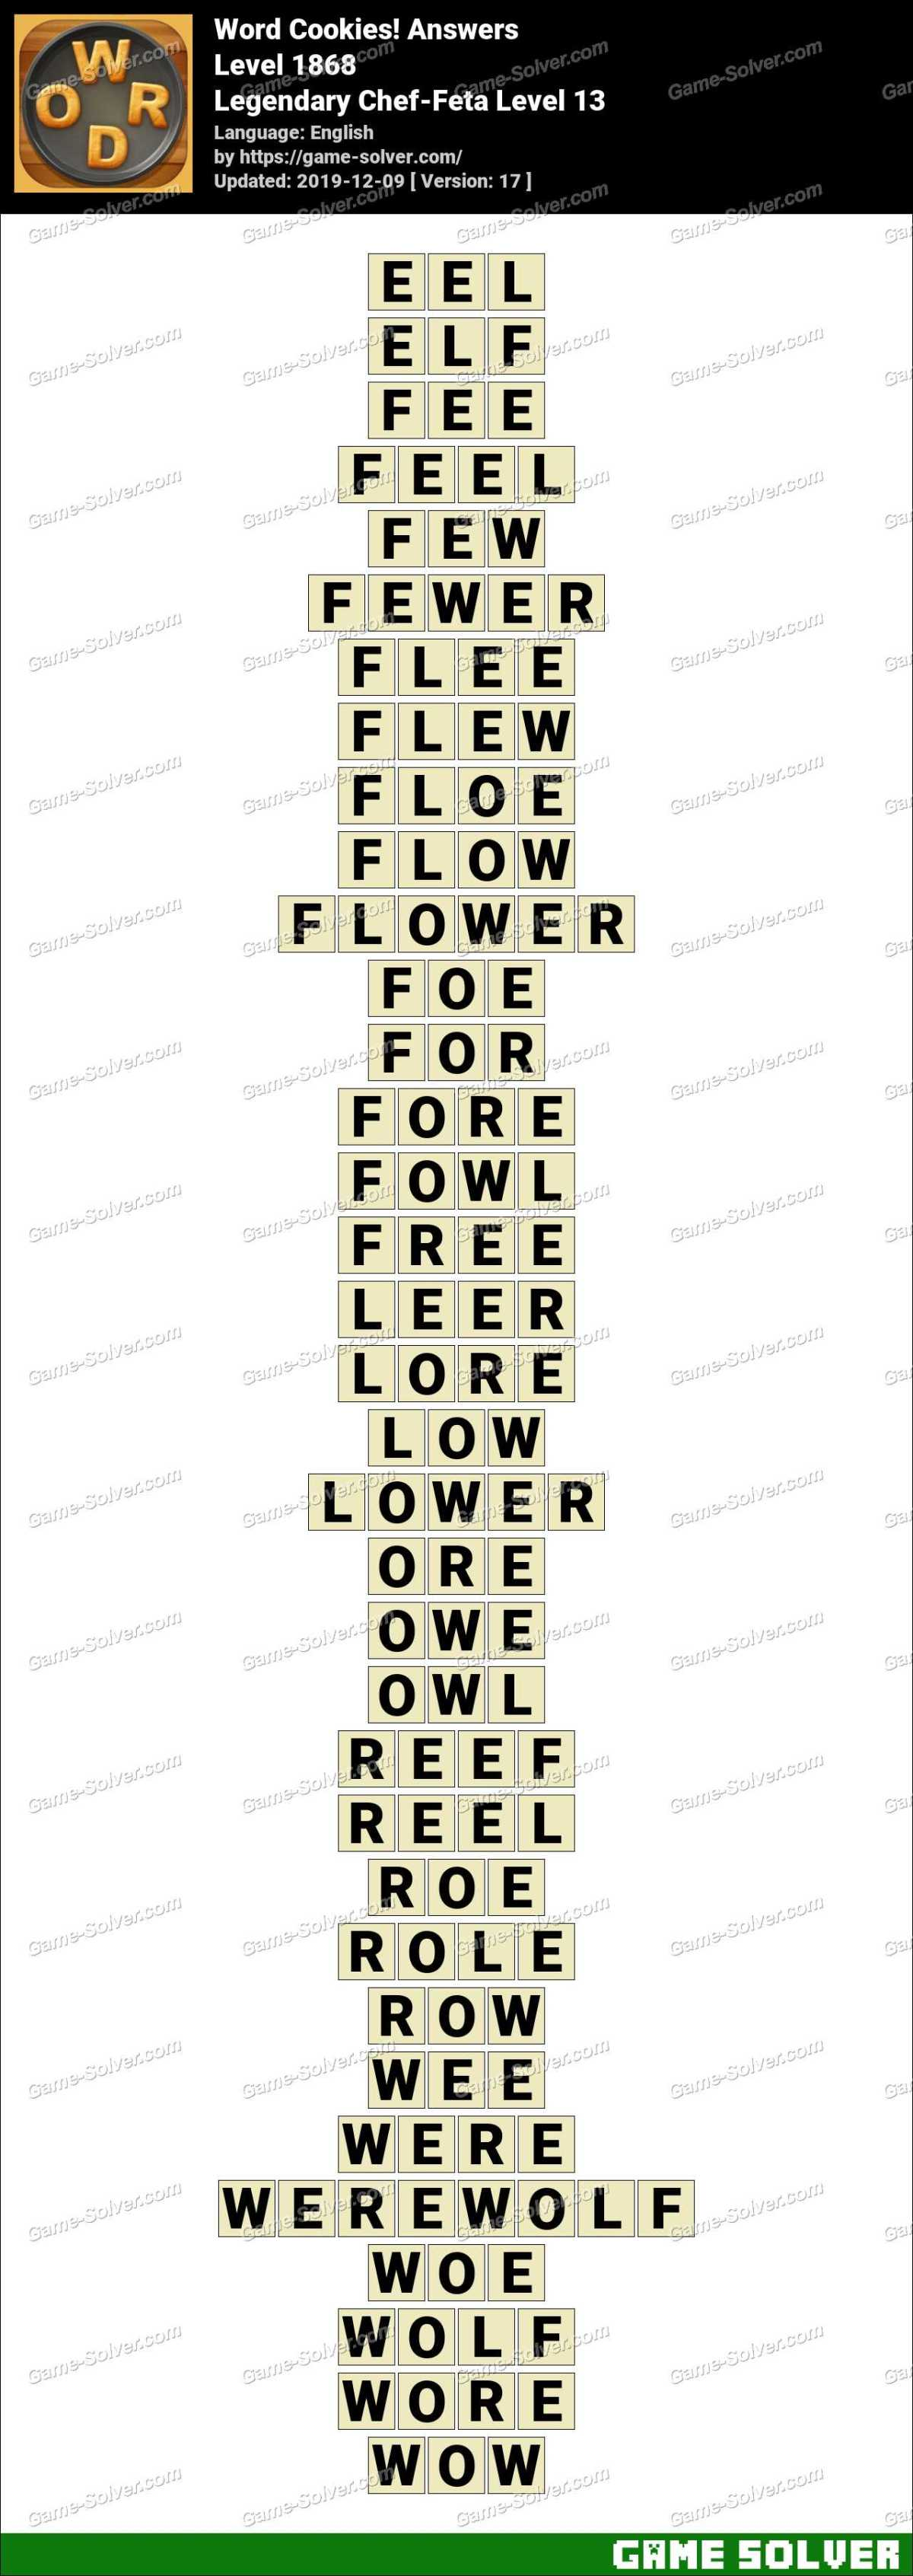 Word Cookies Legendary Chef-Feta Level 13 Answers